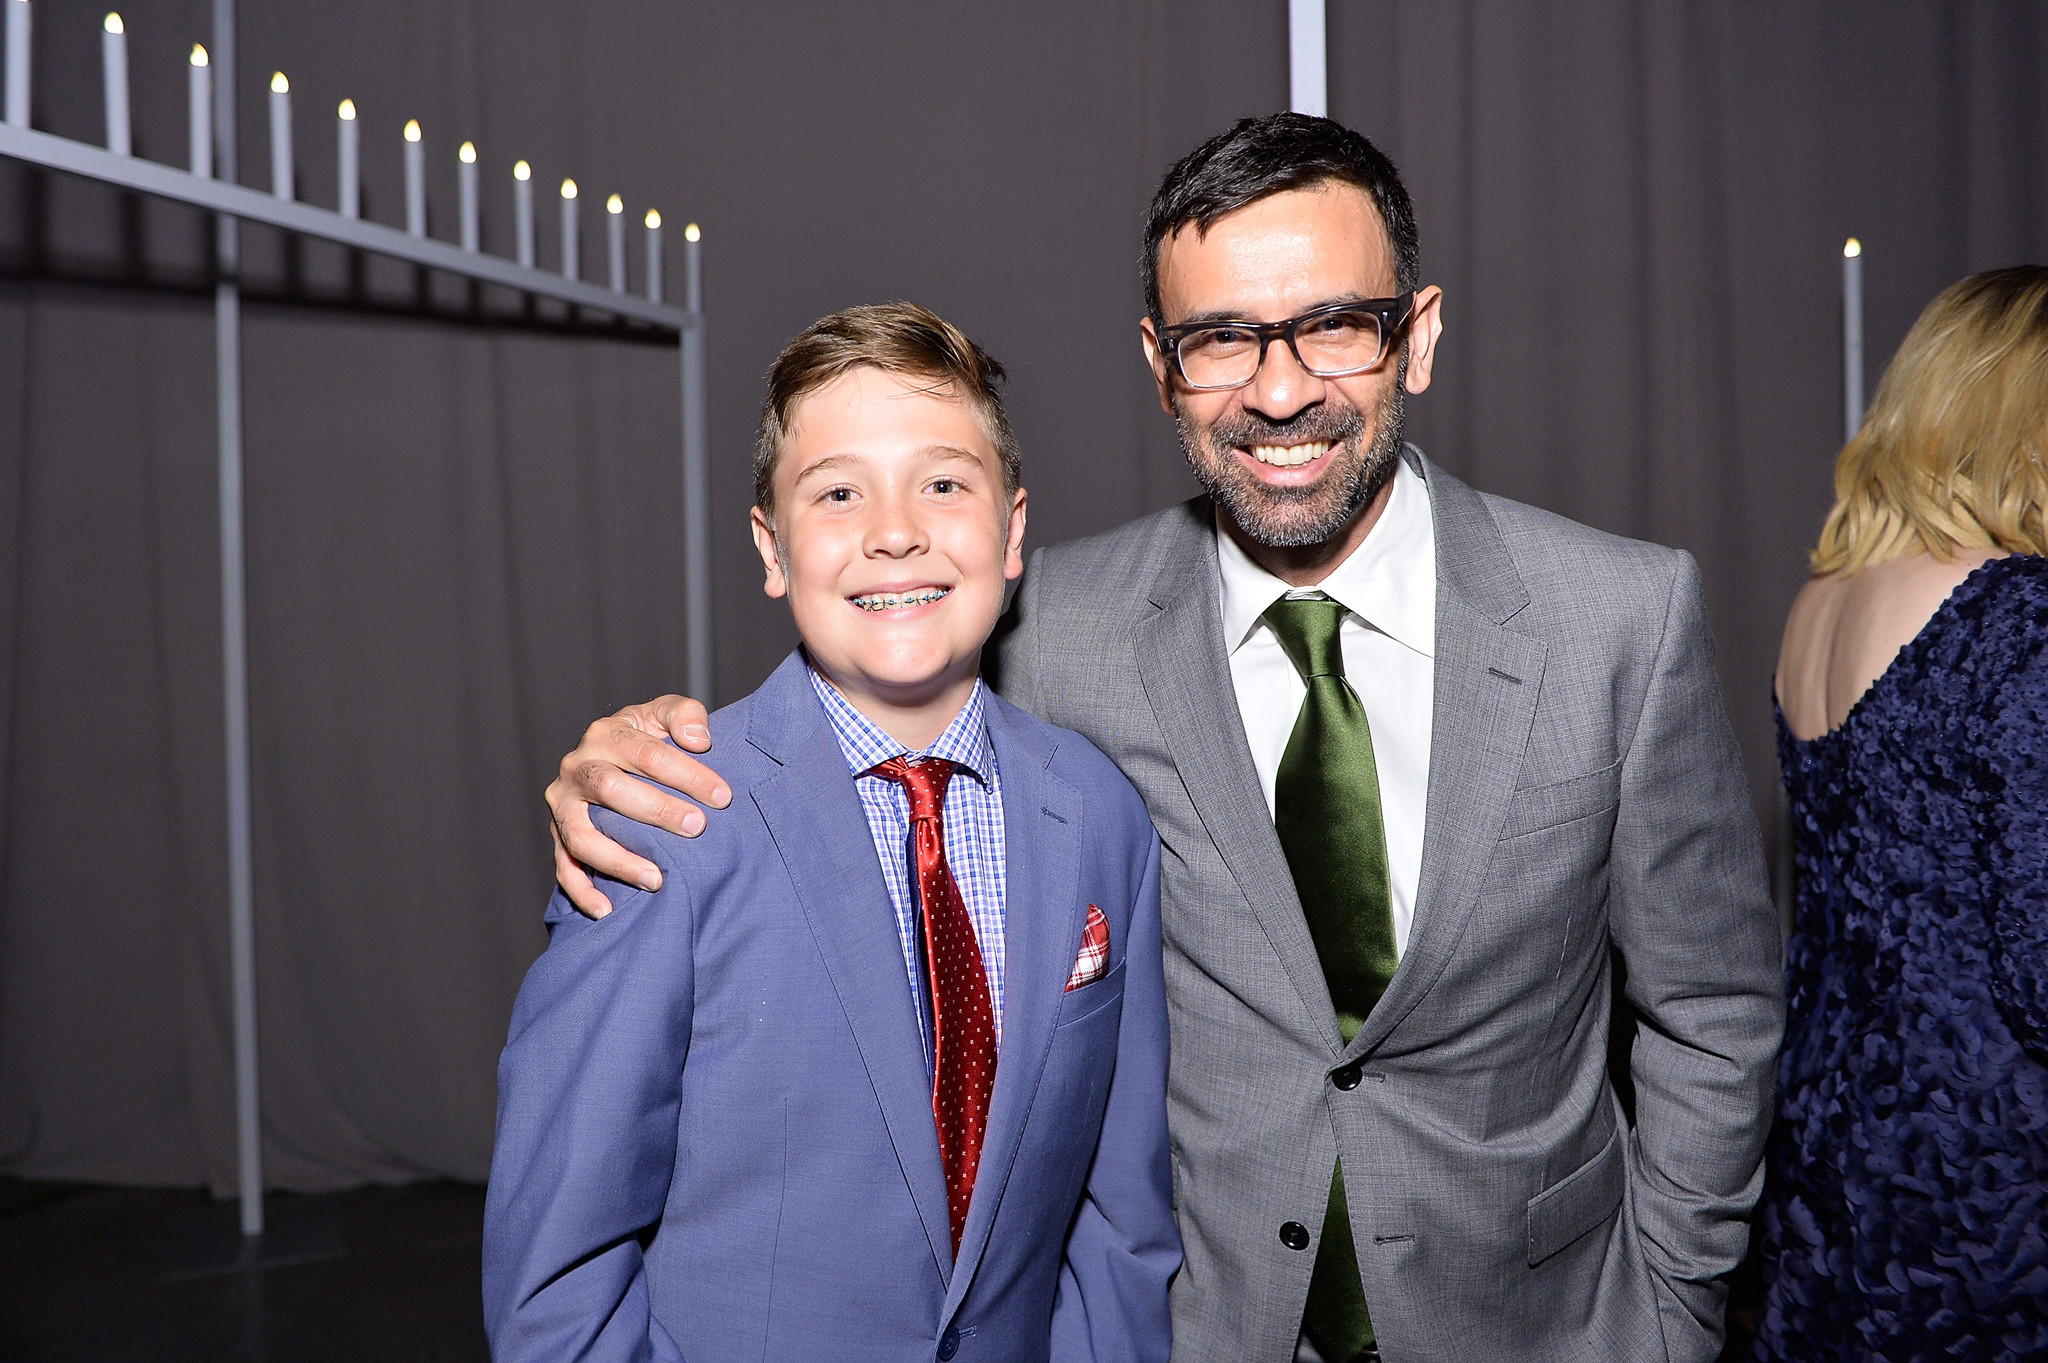 Honoree Kaiis Davis Jarrahy and his father, Reza Jarrahy.